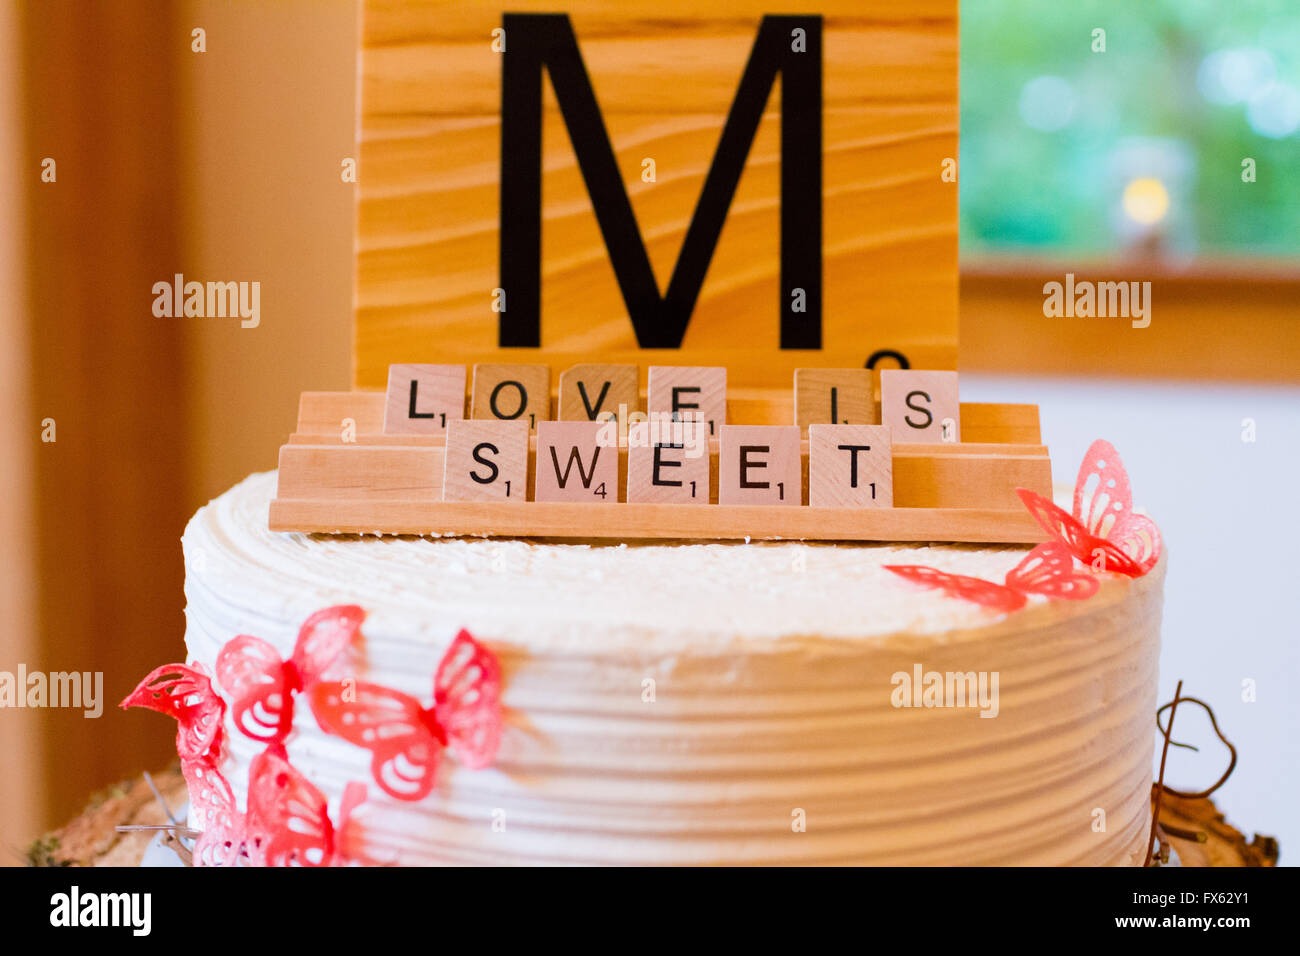 Scrabble Letters At A Wedding Reception Are Used As Decor To